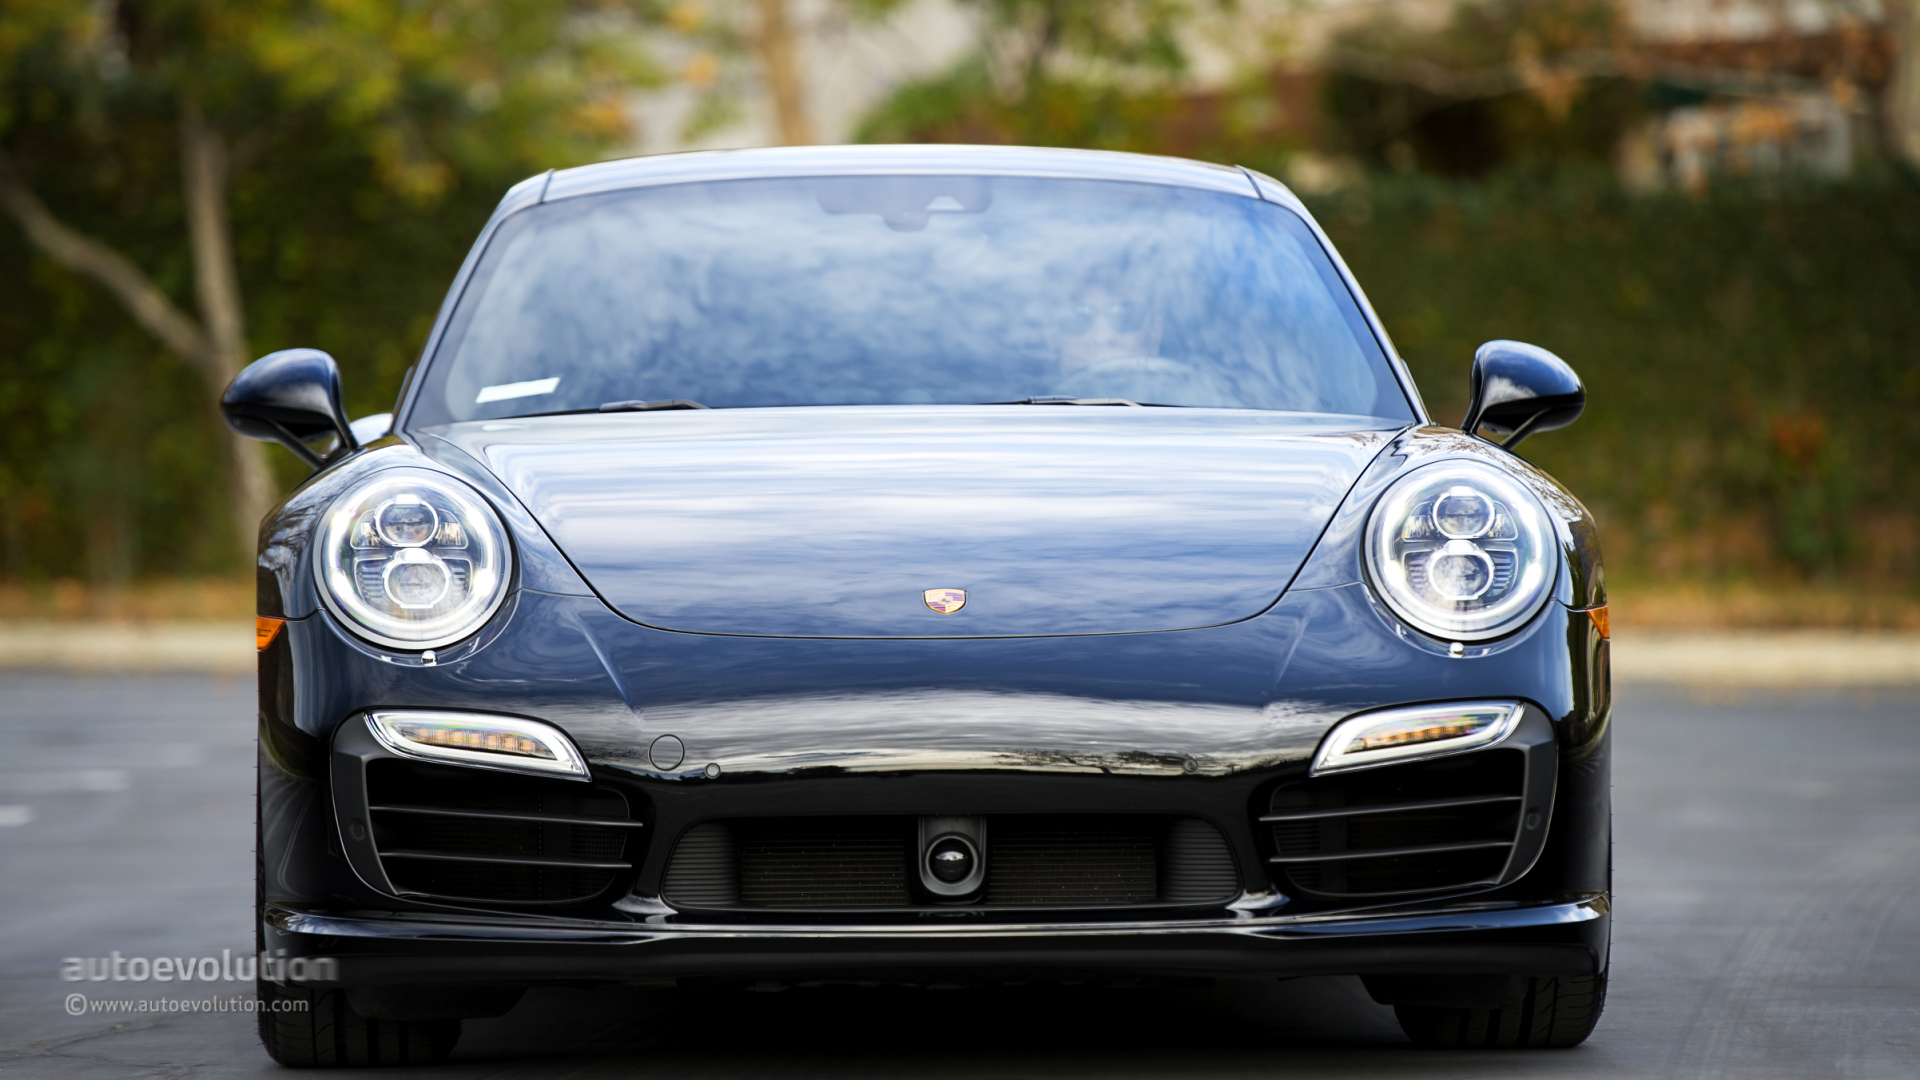 2014 PORSCHE 911 Turbo S Review - autoevolution